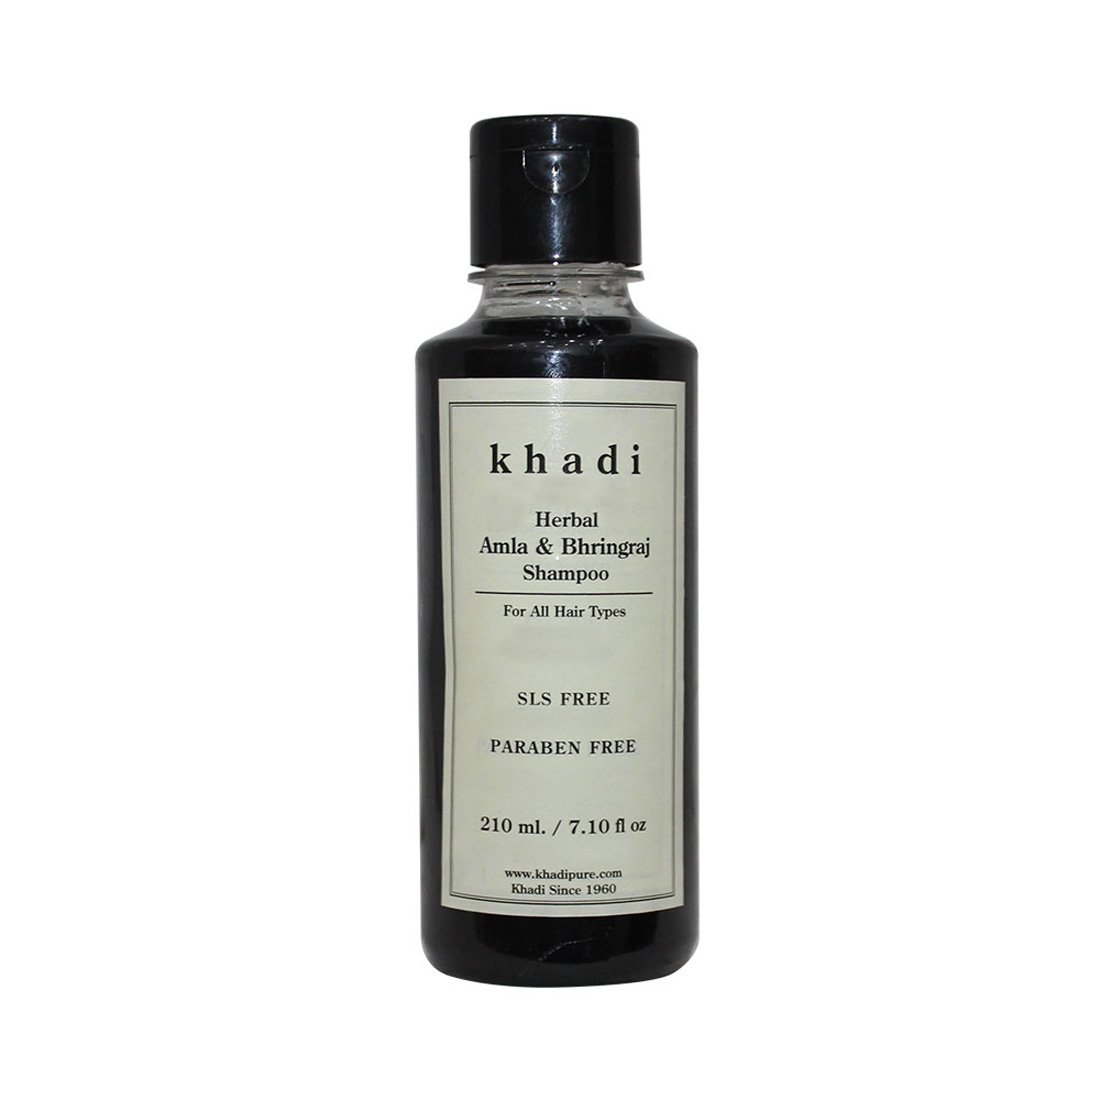 Khadi Natural Herbal Ayurvedic Amla and Bhringraj Hair Cleanser and Shampoo for all Hair Types SLS and Paraben Free (210 ml)